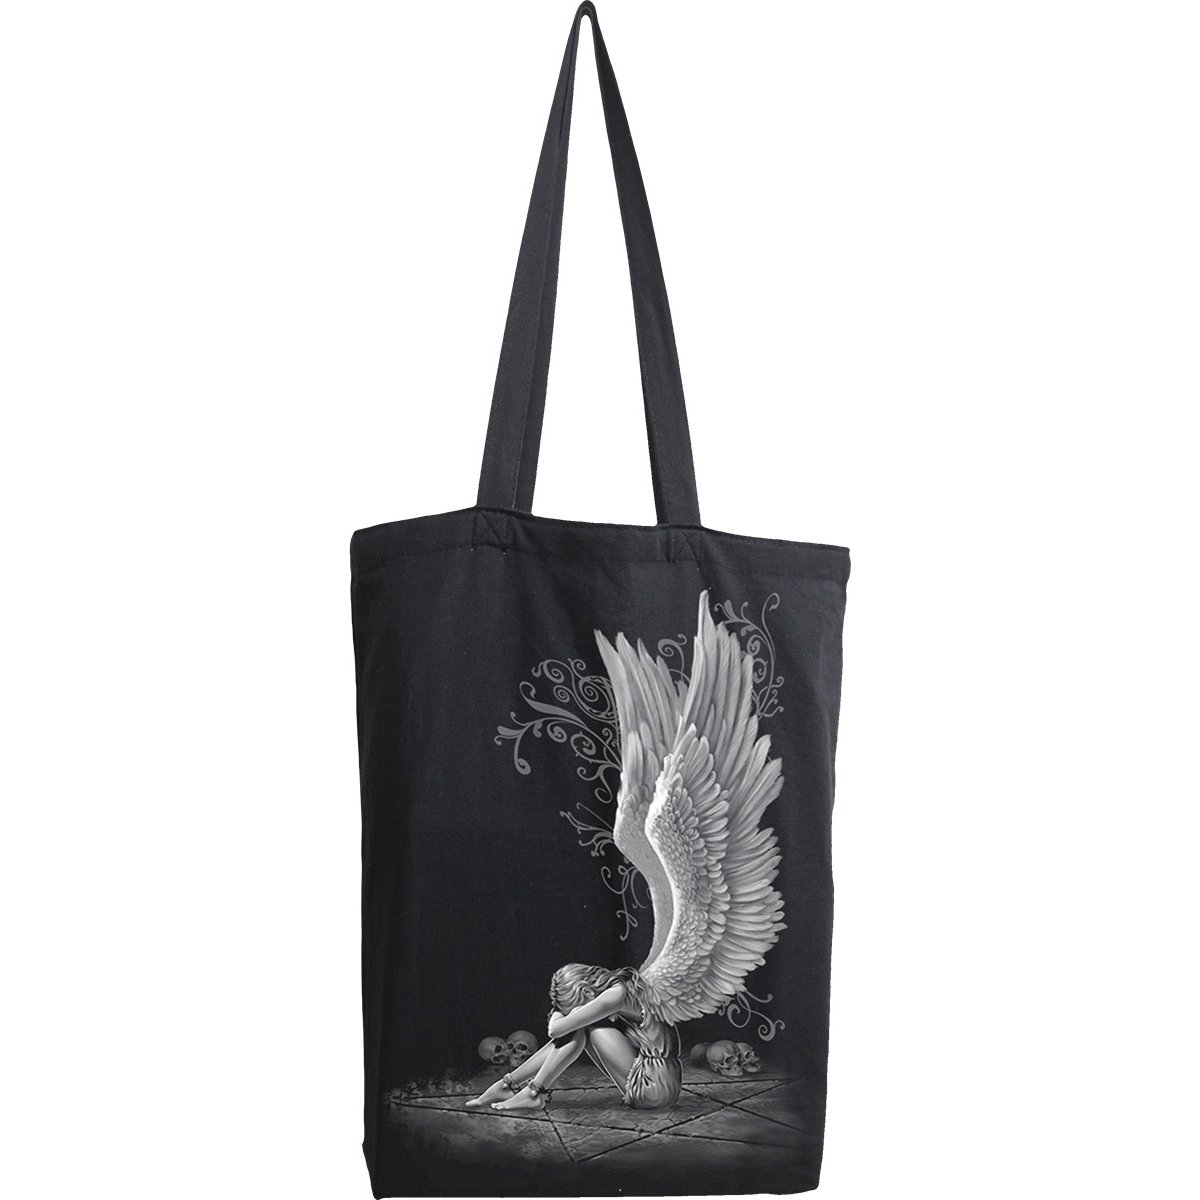 Angel In Sorrow Cloth Tote Bag - Rebels Depot